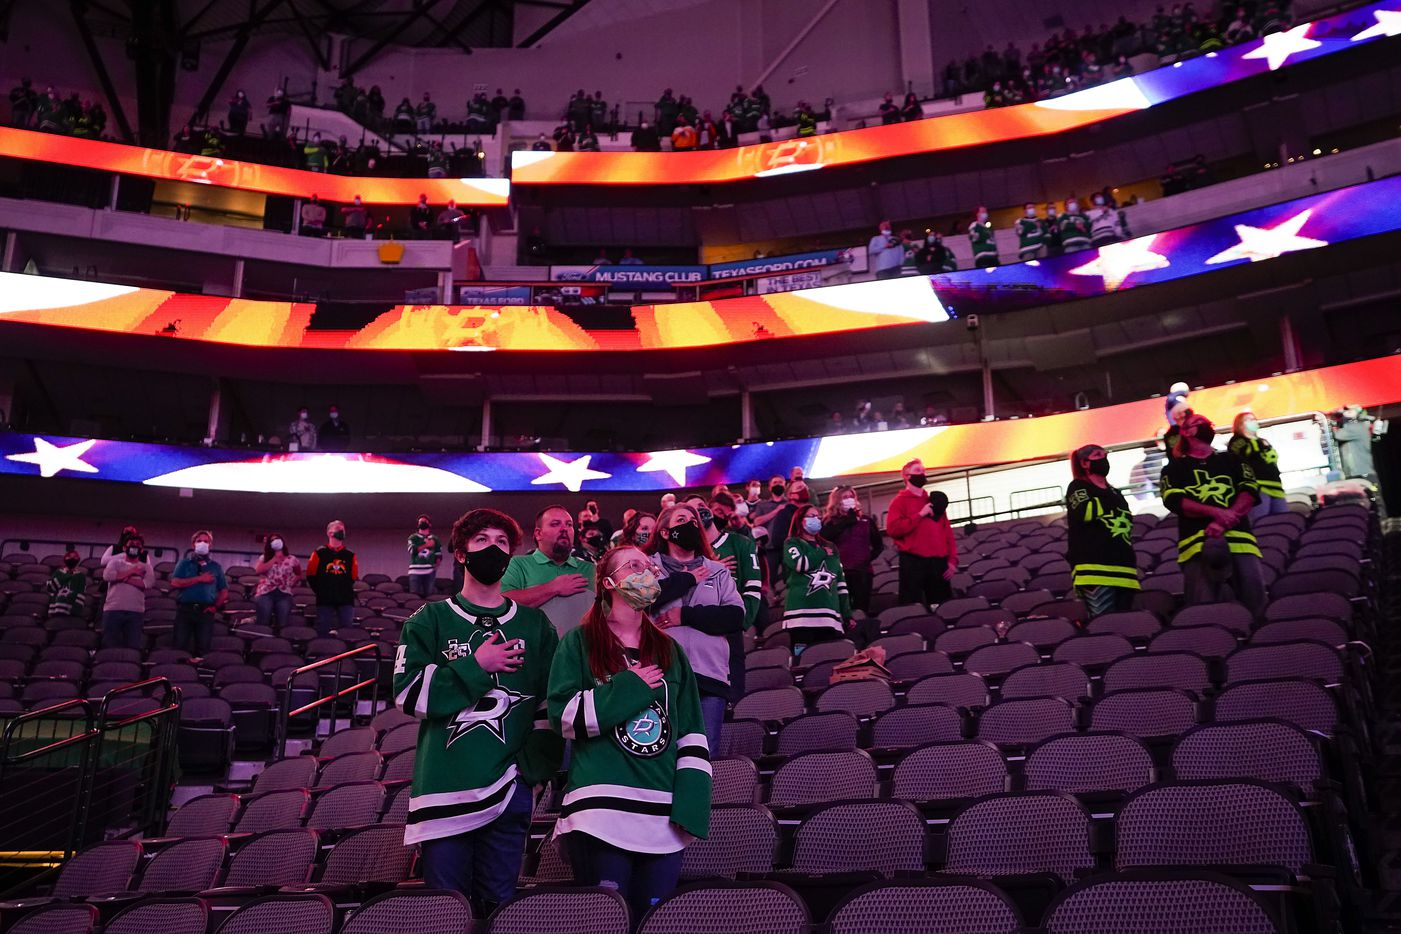 Dallas Stars fans stand for the national anthem before an NHL hockey game against the Tampa Bay Lightning at the American Airlines Center on Thursday, March 25, 2021, in Dallas. (Smiley N. Pool/The Dallas Morning News)